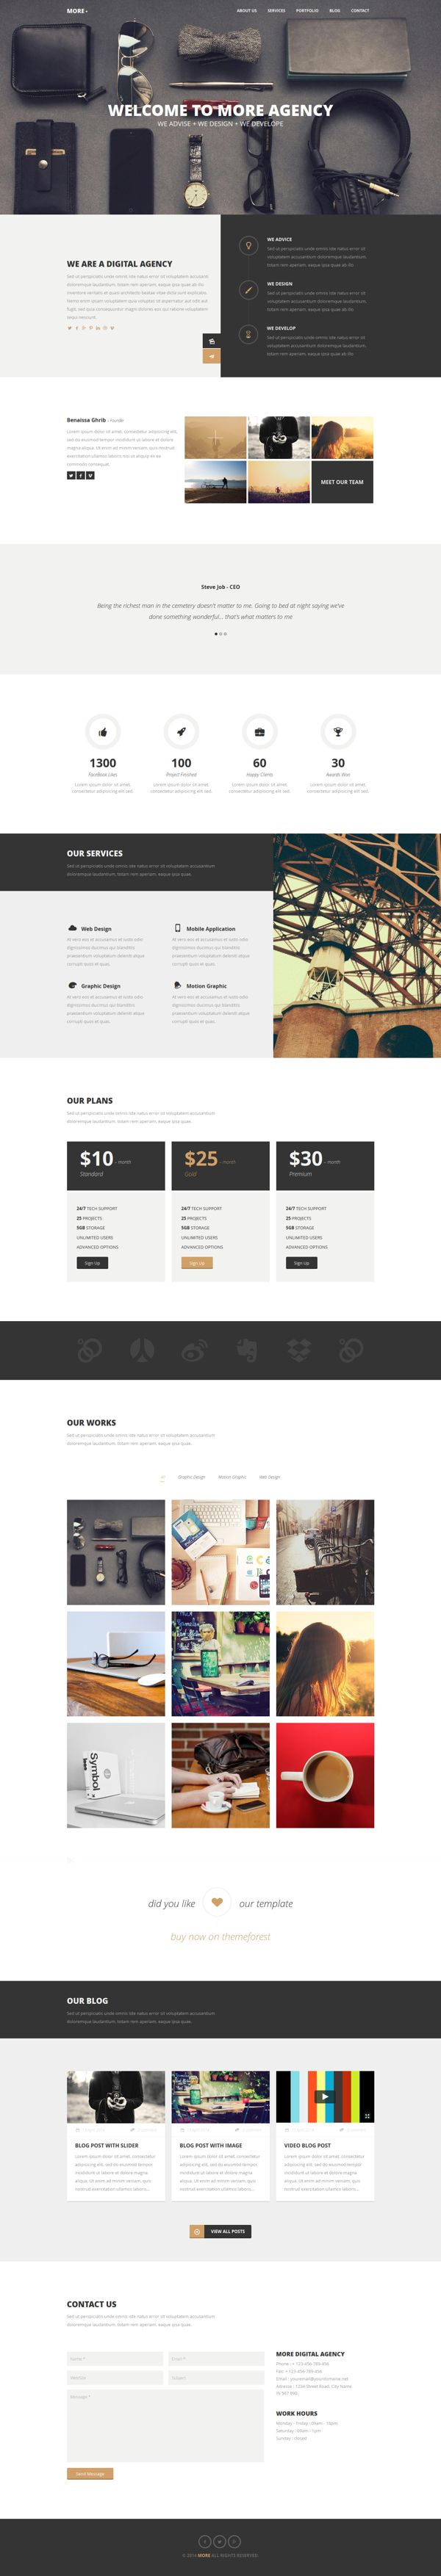 MORE - Creative One Page WordPress Theme by Themes Awards, via Behance